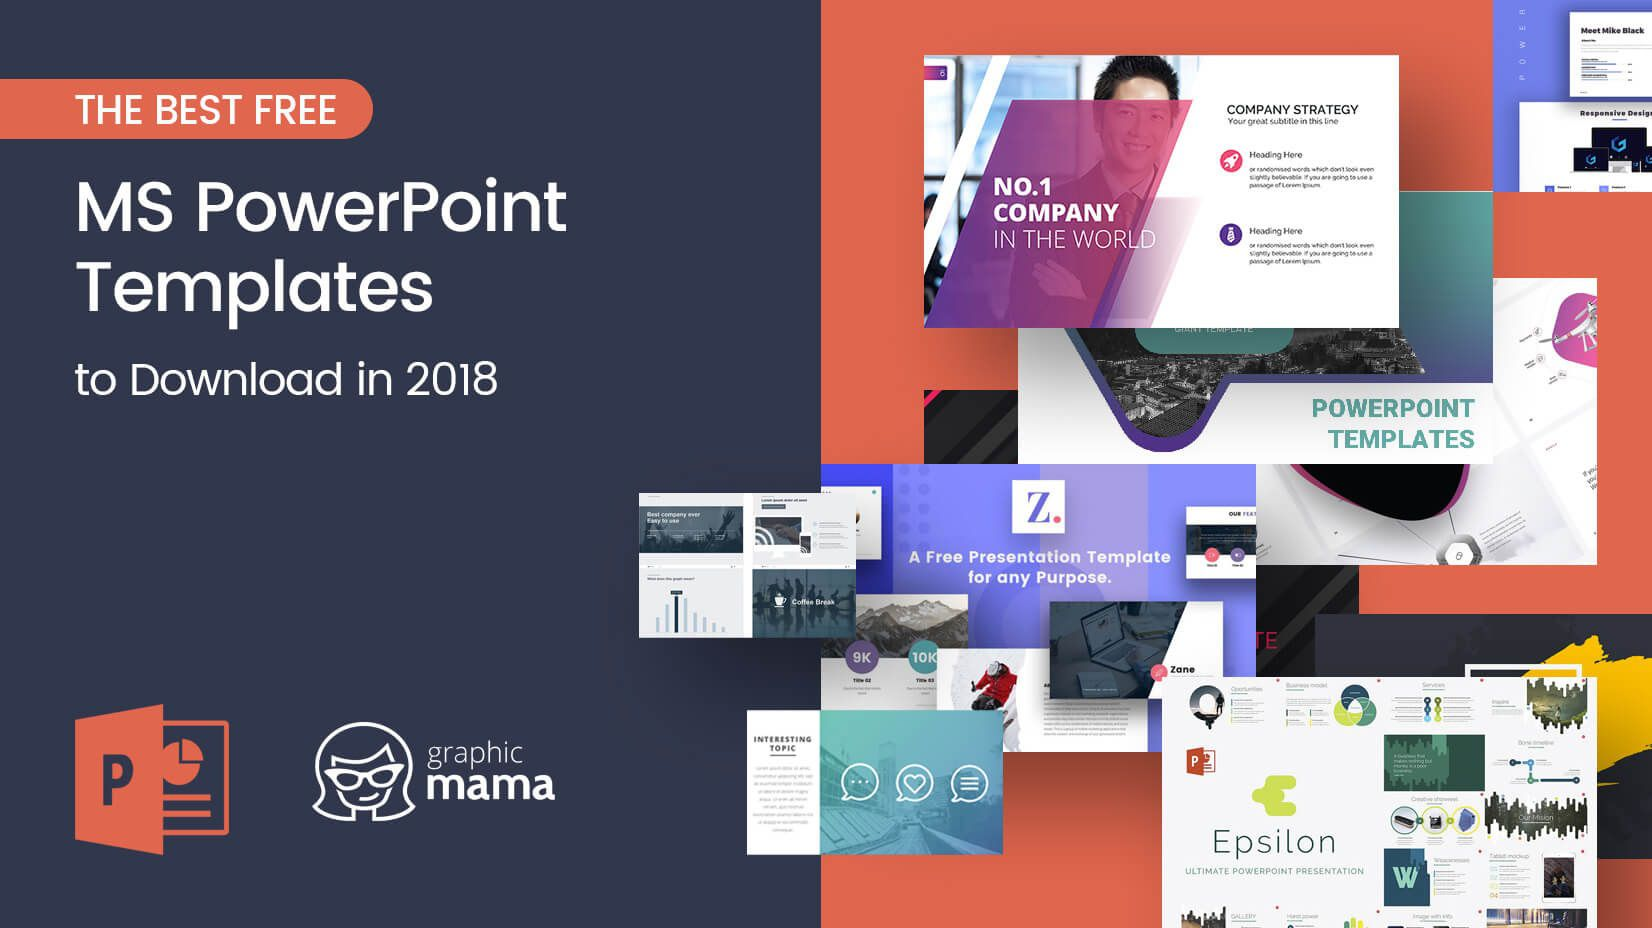 008 Awful Download Free Powerpoint Template Highest Quality  2019 Science Creative 2020Full